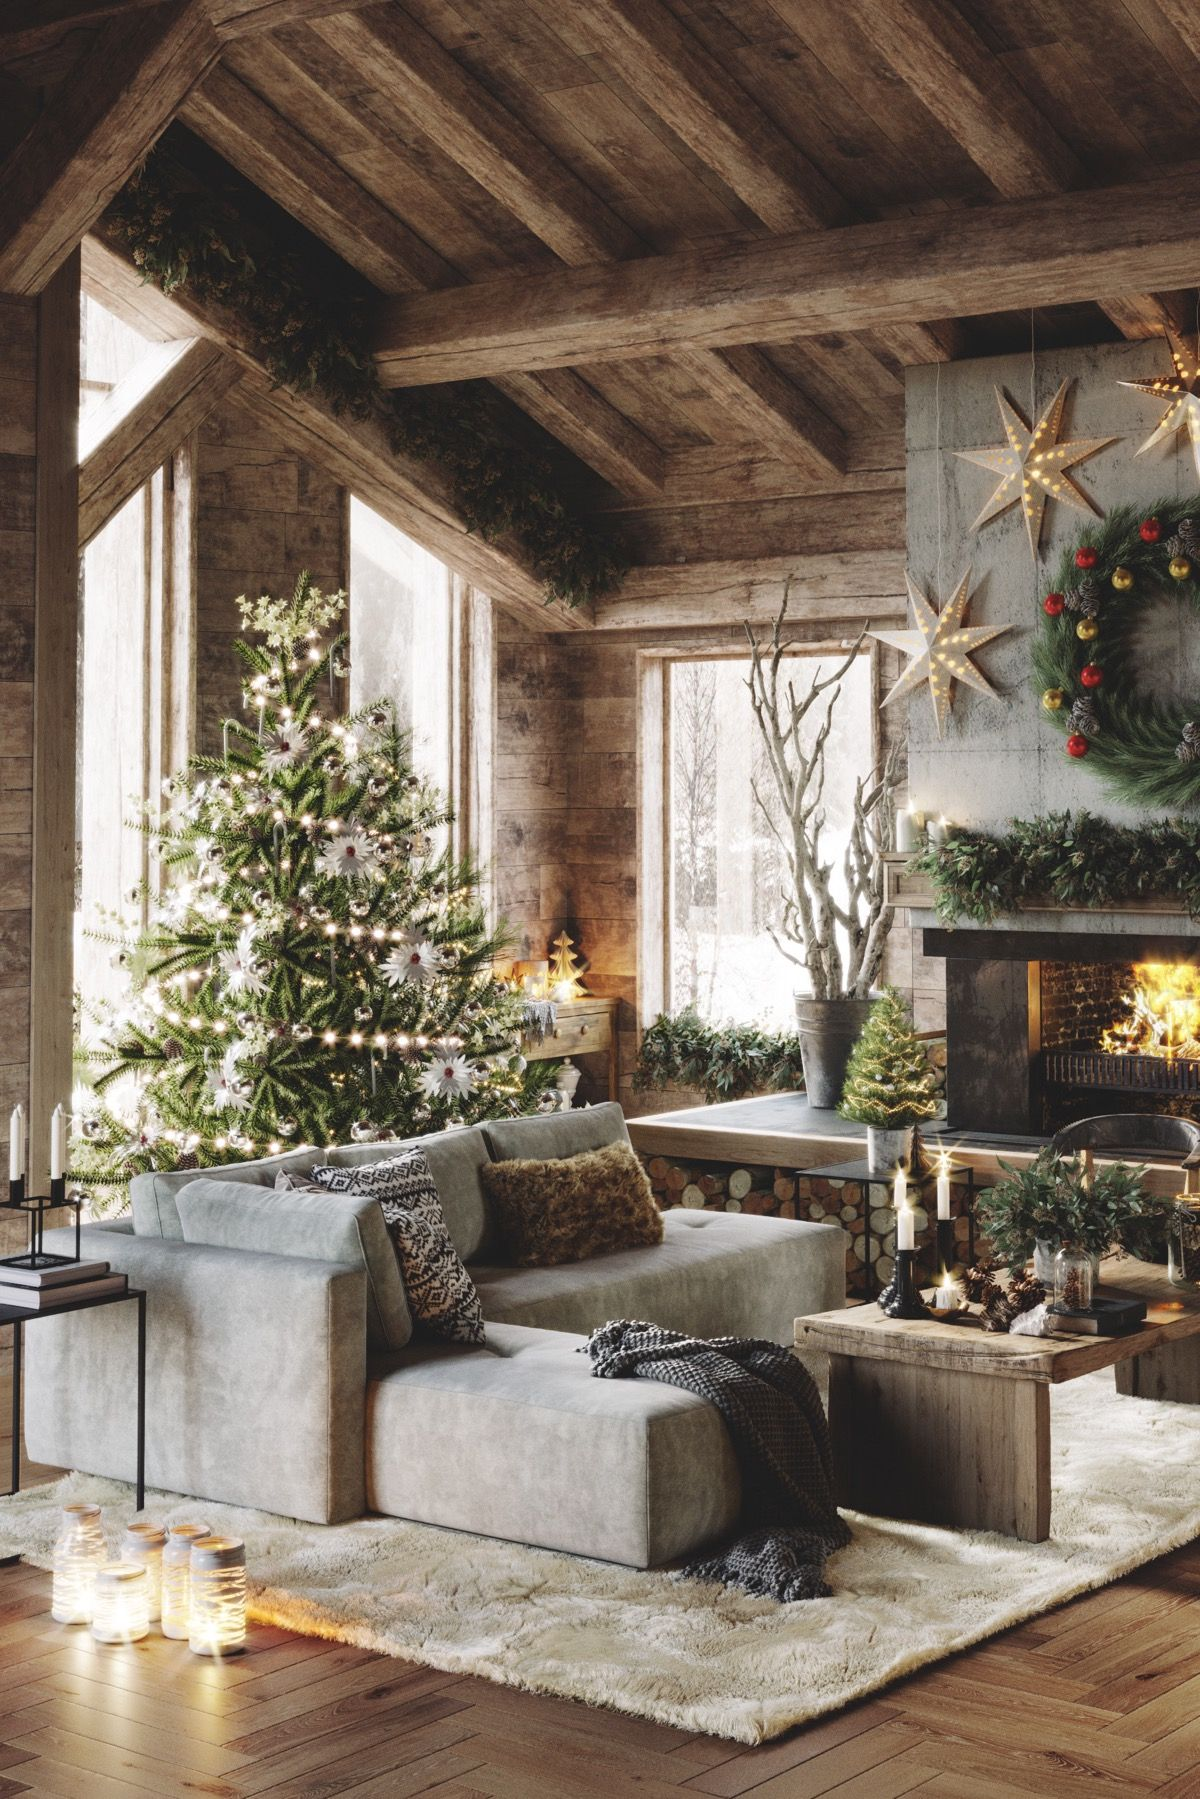 Photo of Wishing All Home Designing Readers A Very Happy Christmas And Holidays